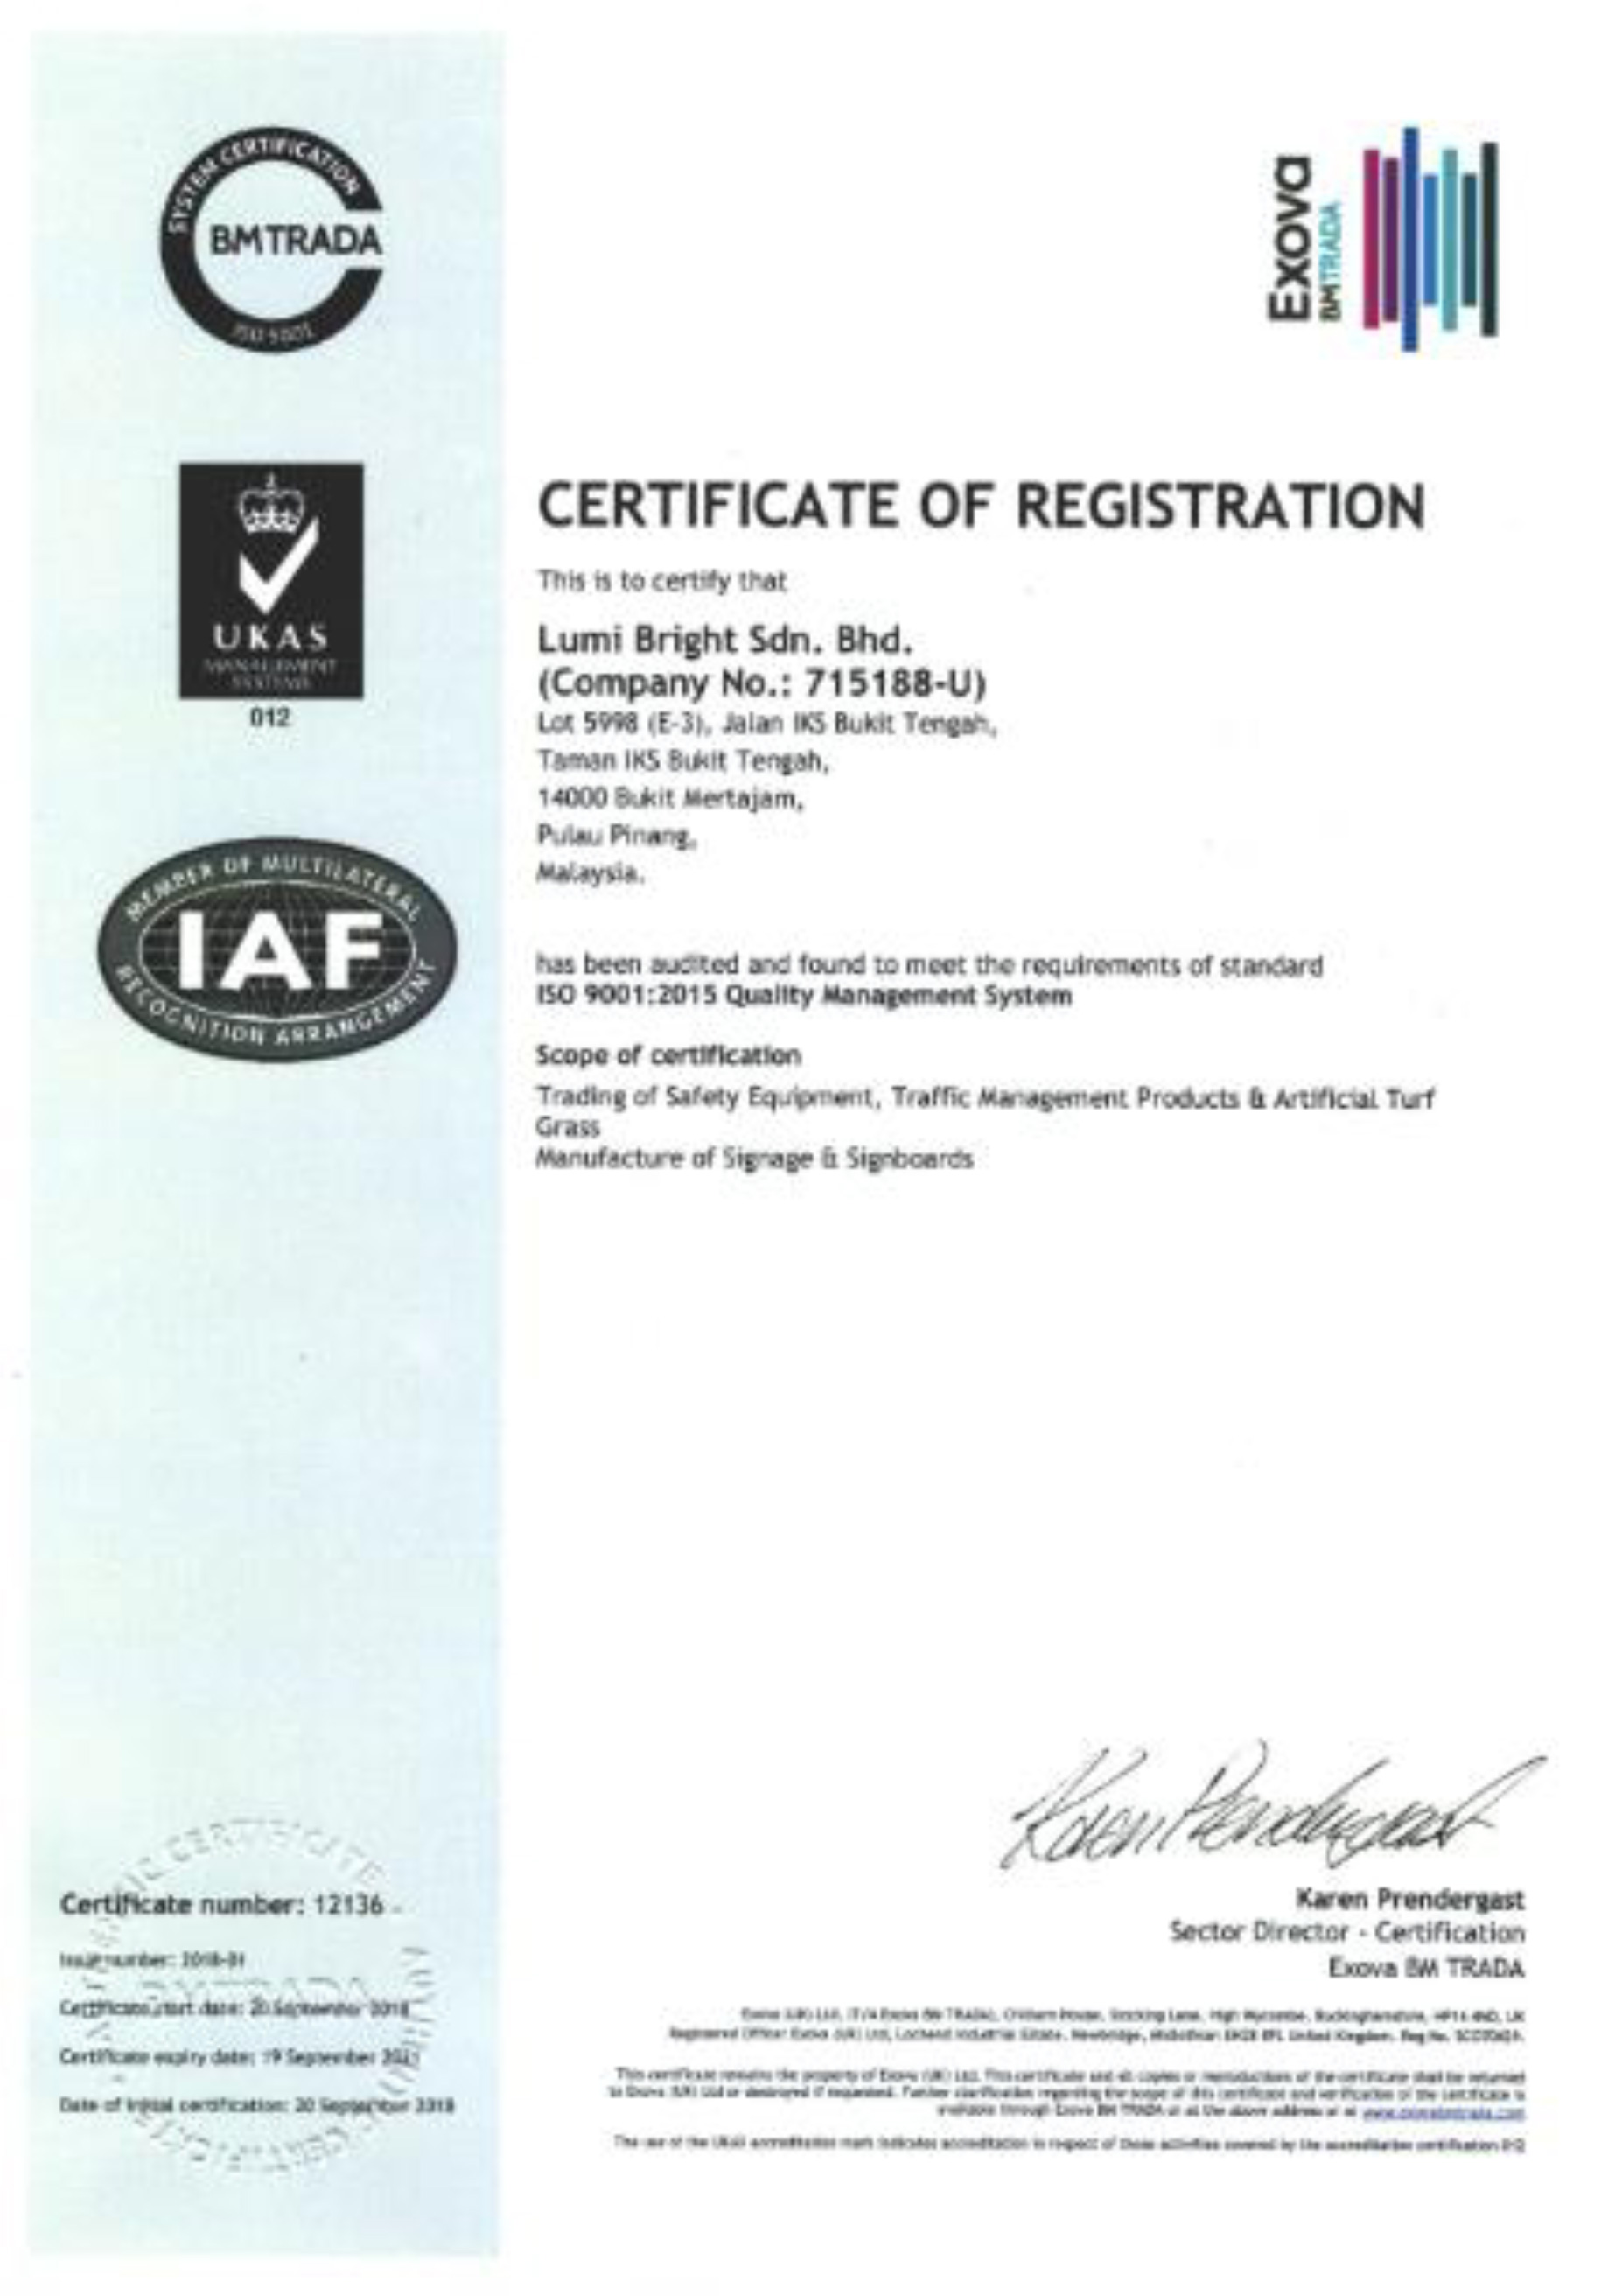 Certification of Registration for ISO 90012015 on Quality Management System